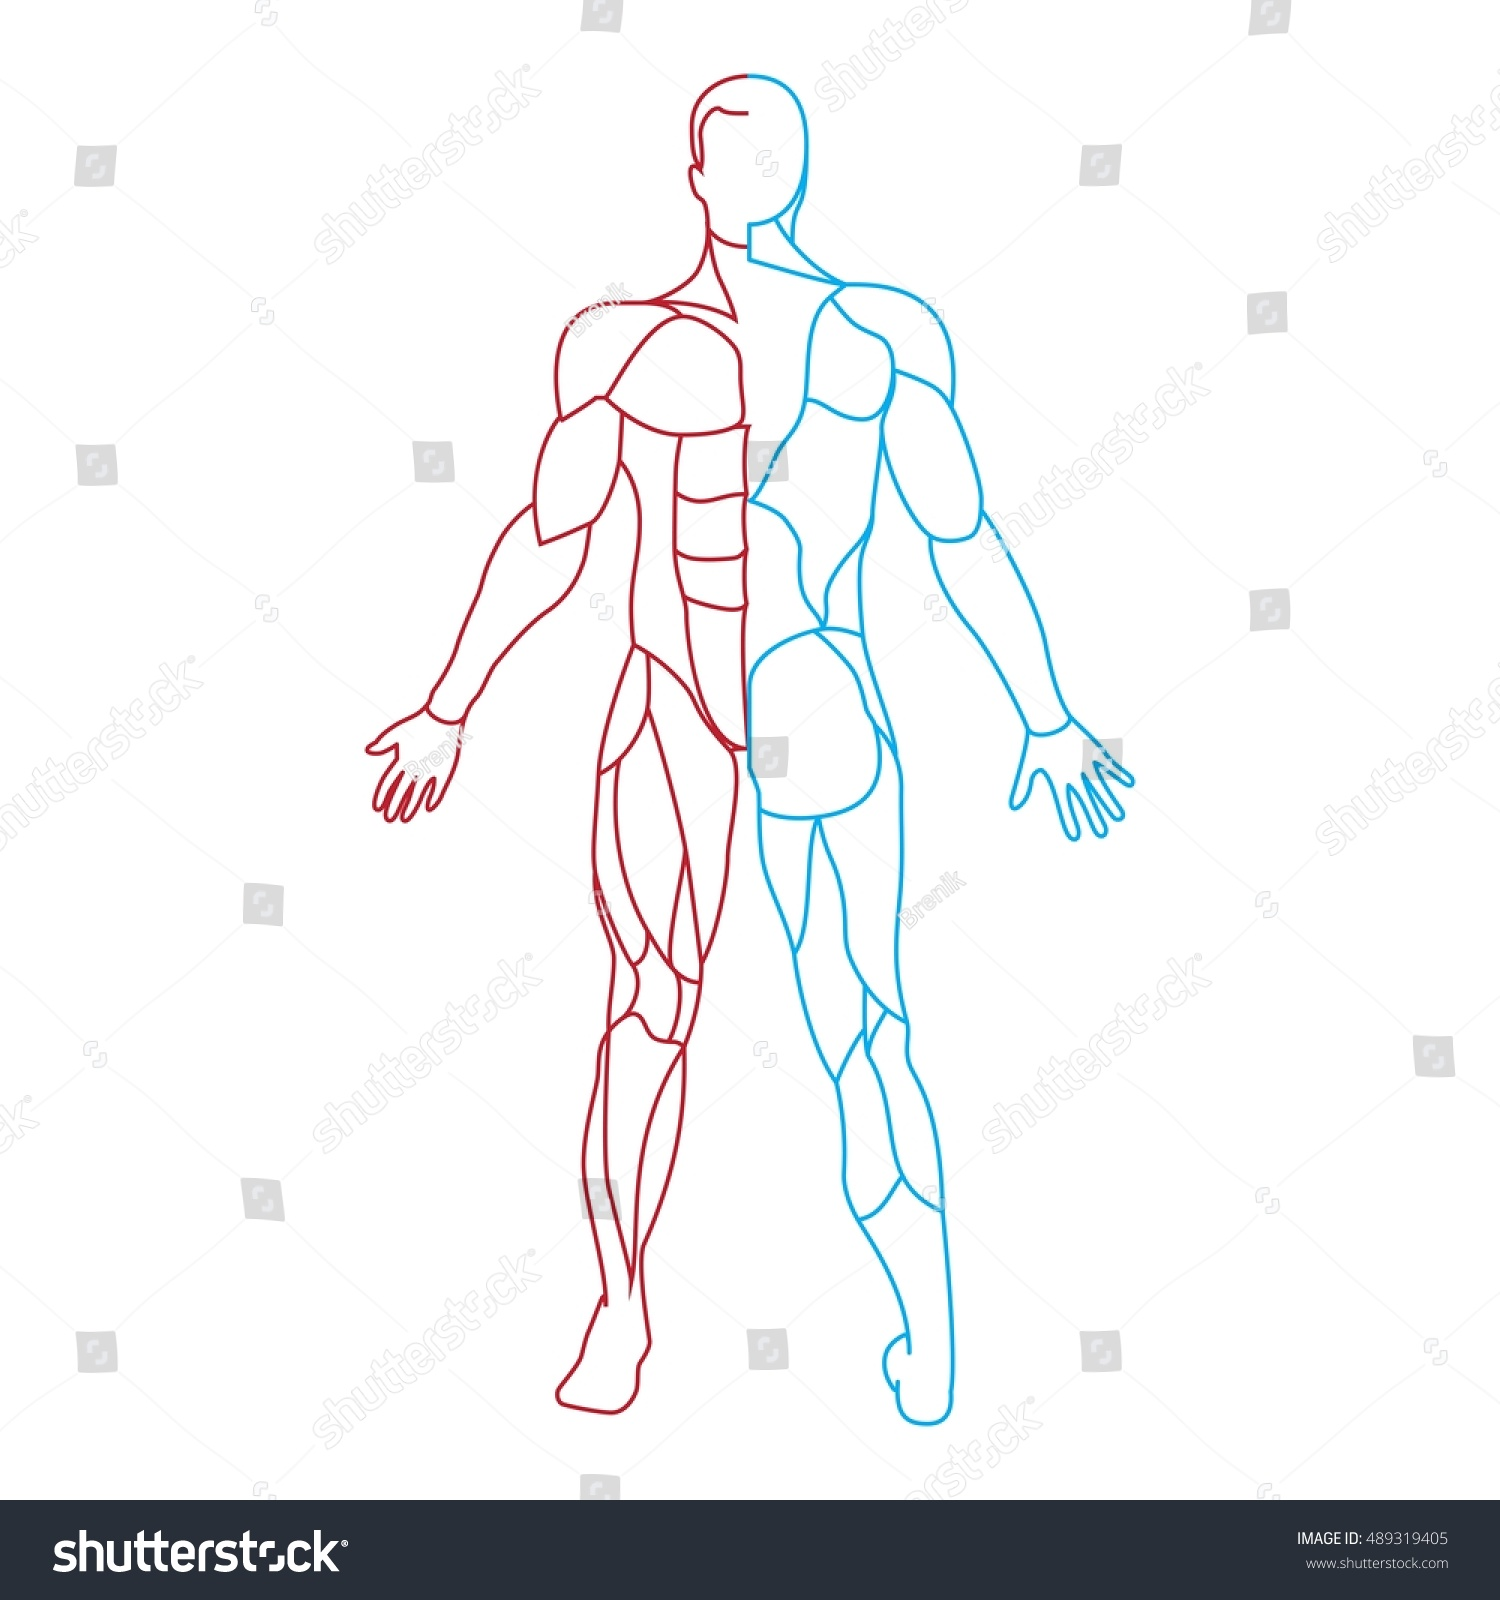 Anatomy Male Muscular System Human Muscles Stock Vector Royalty